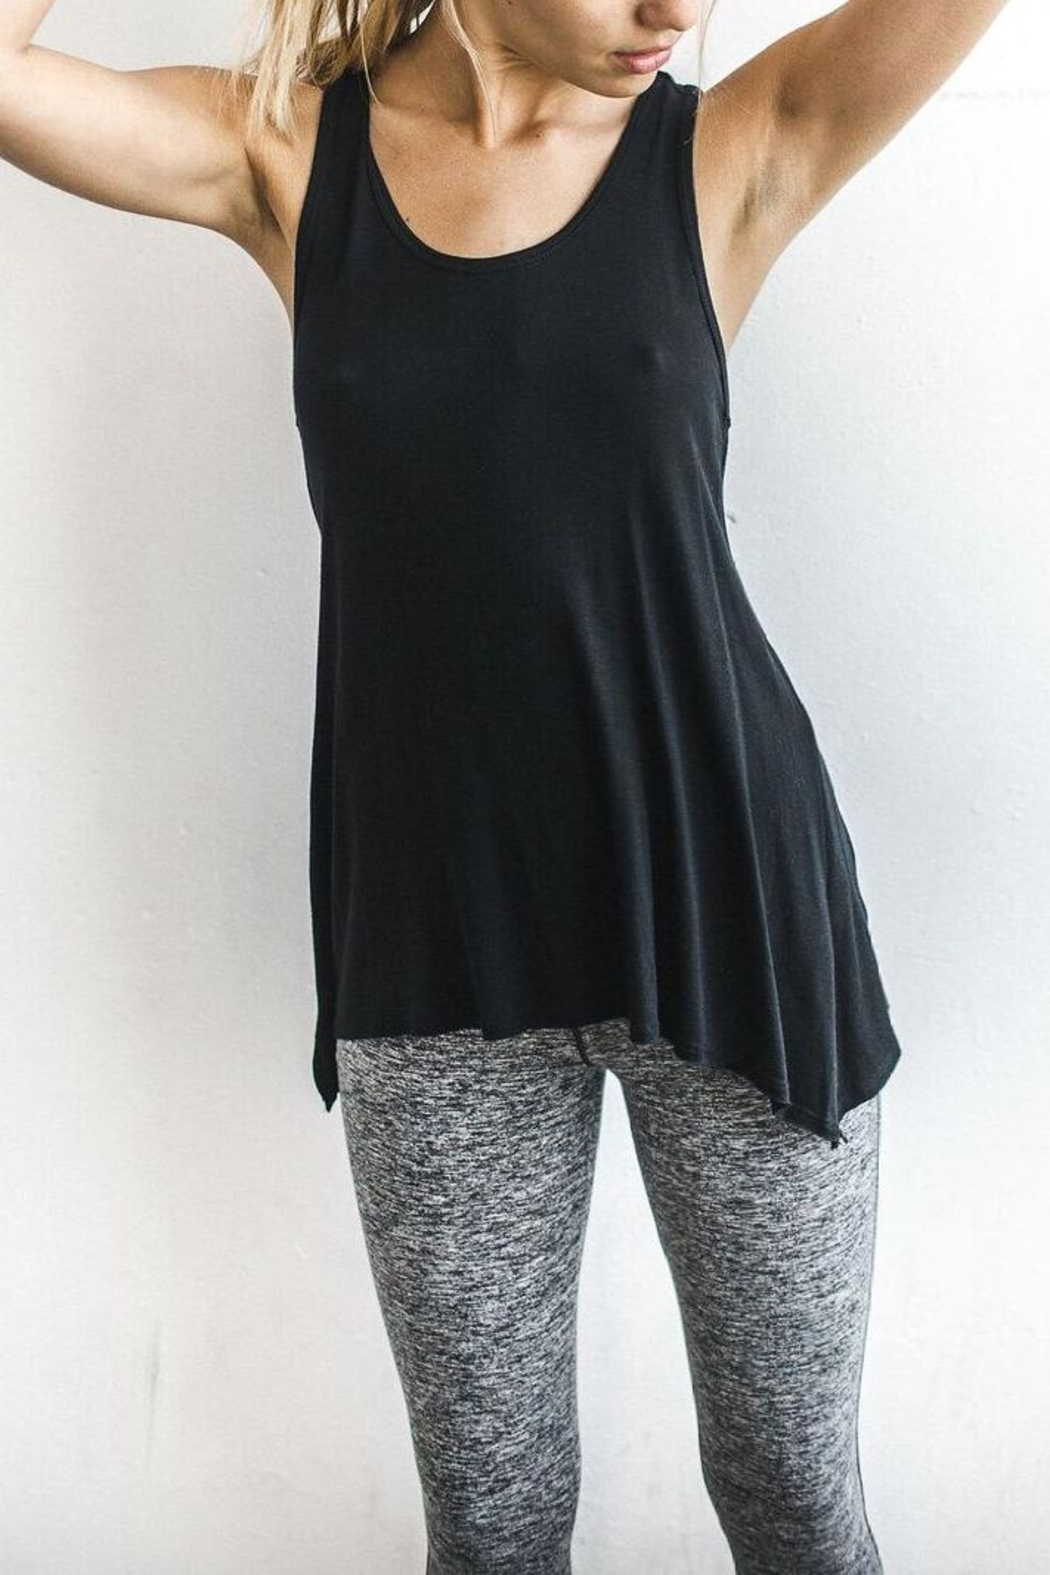 Joah Brown Asymmetrical Tank Top - Main Image